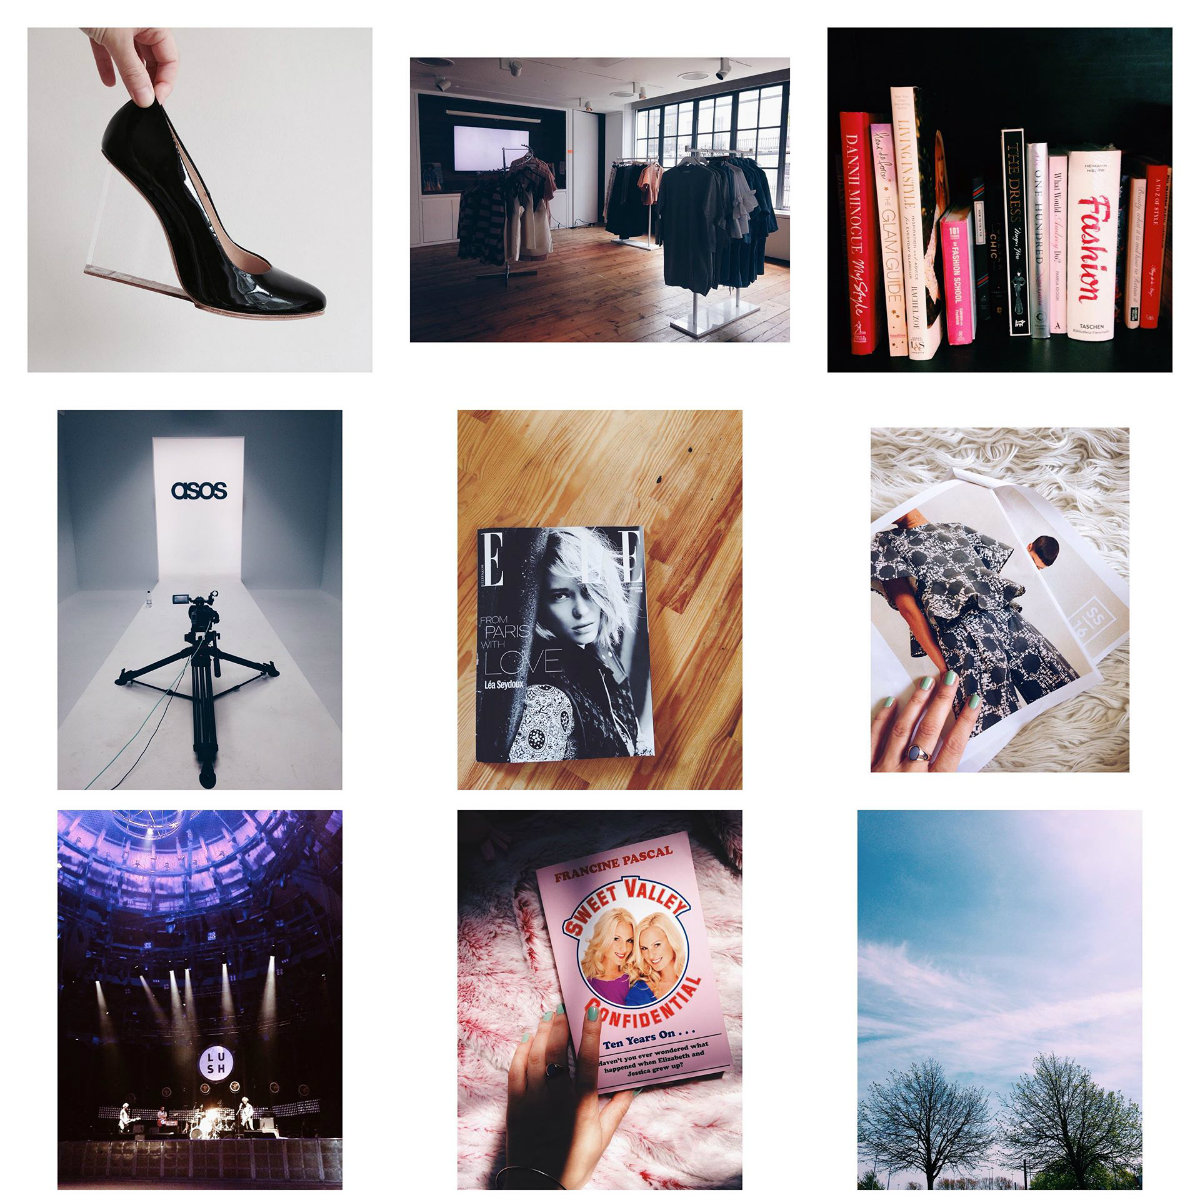 instagram round up post May 2016